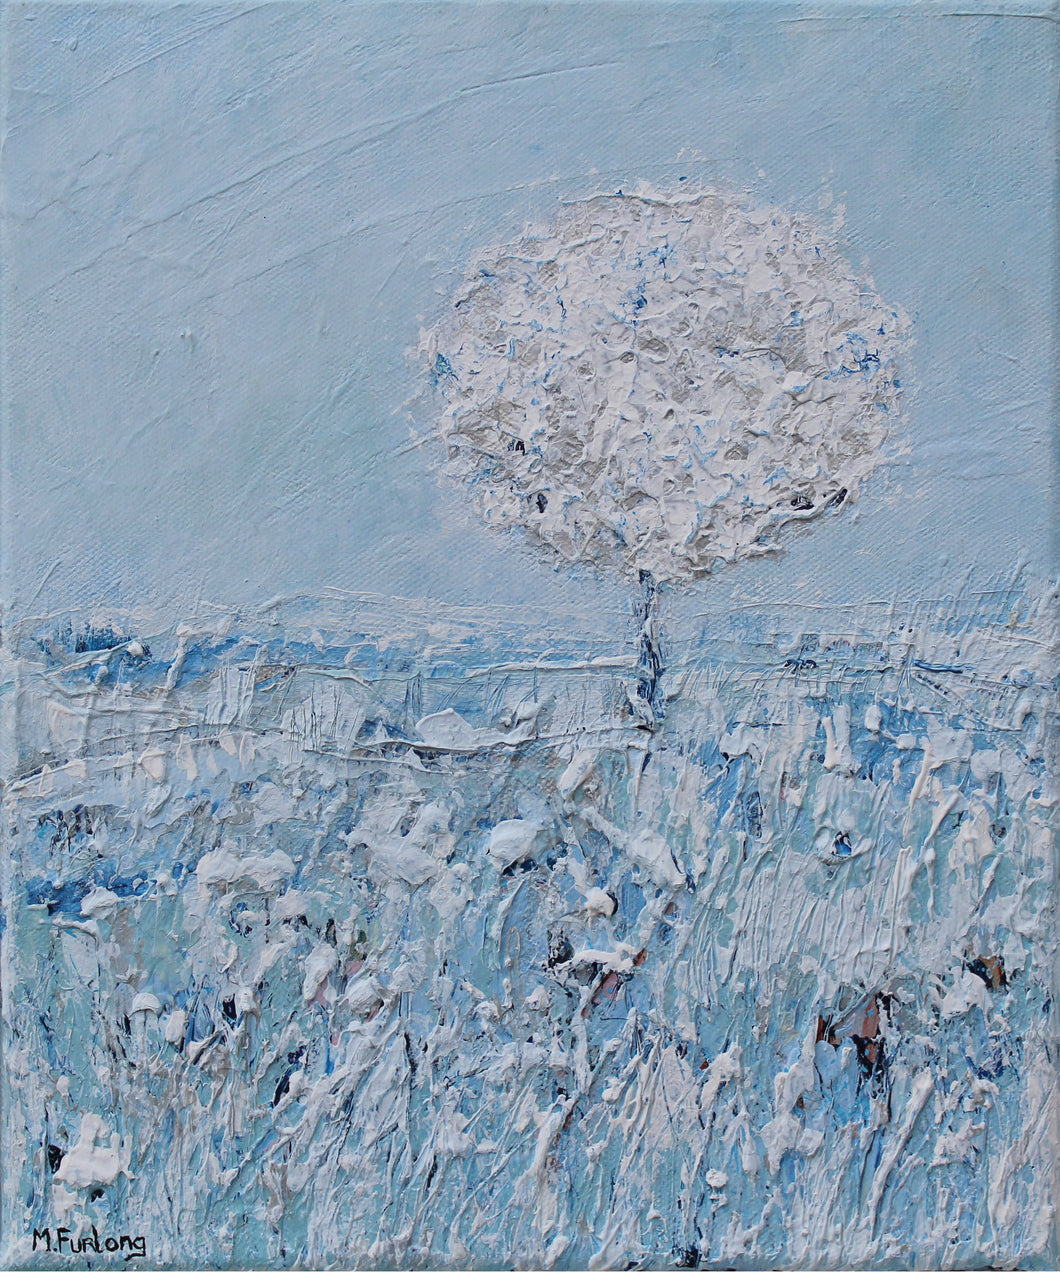 The Blue Scene - original acrylic painting on canvas (H30xW25cm)